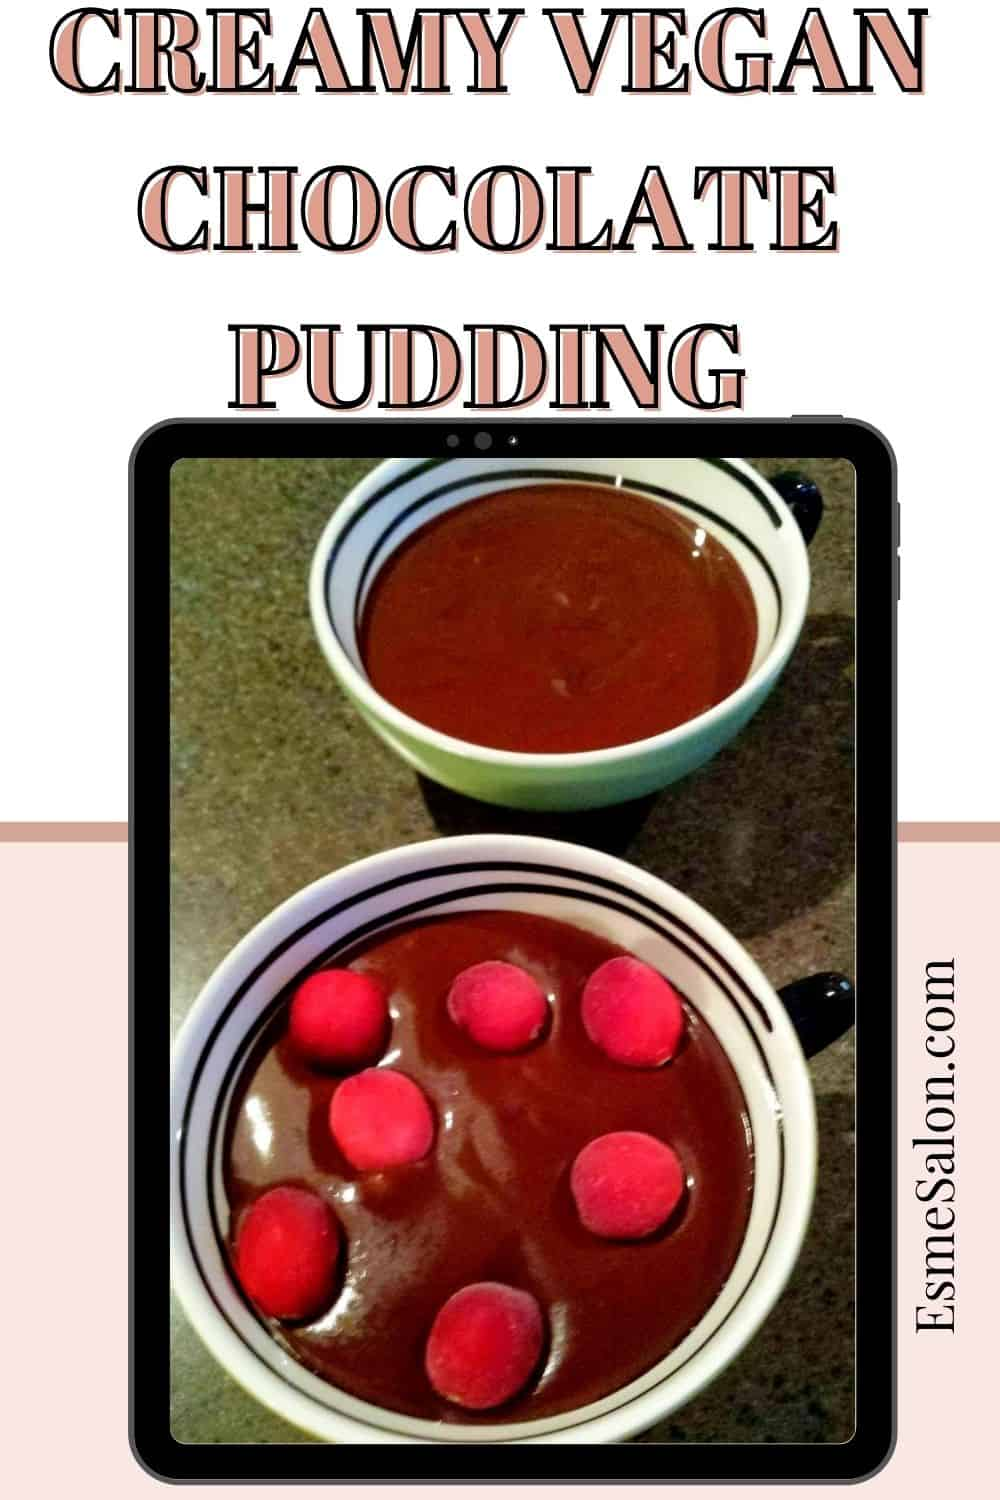 Two bowls of Creamy Vegan Chocolate Pudding and topped with berries